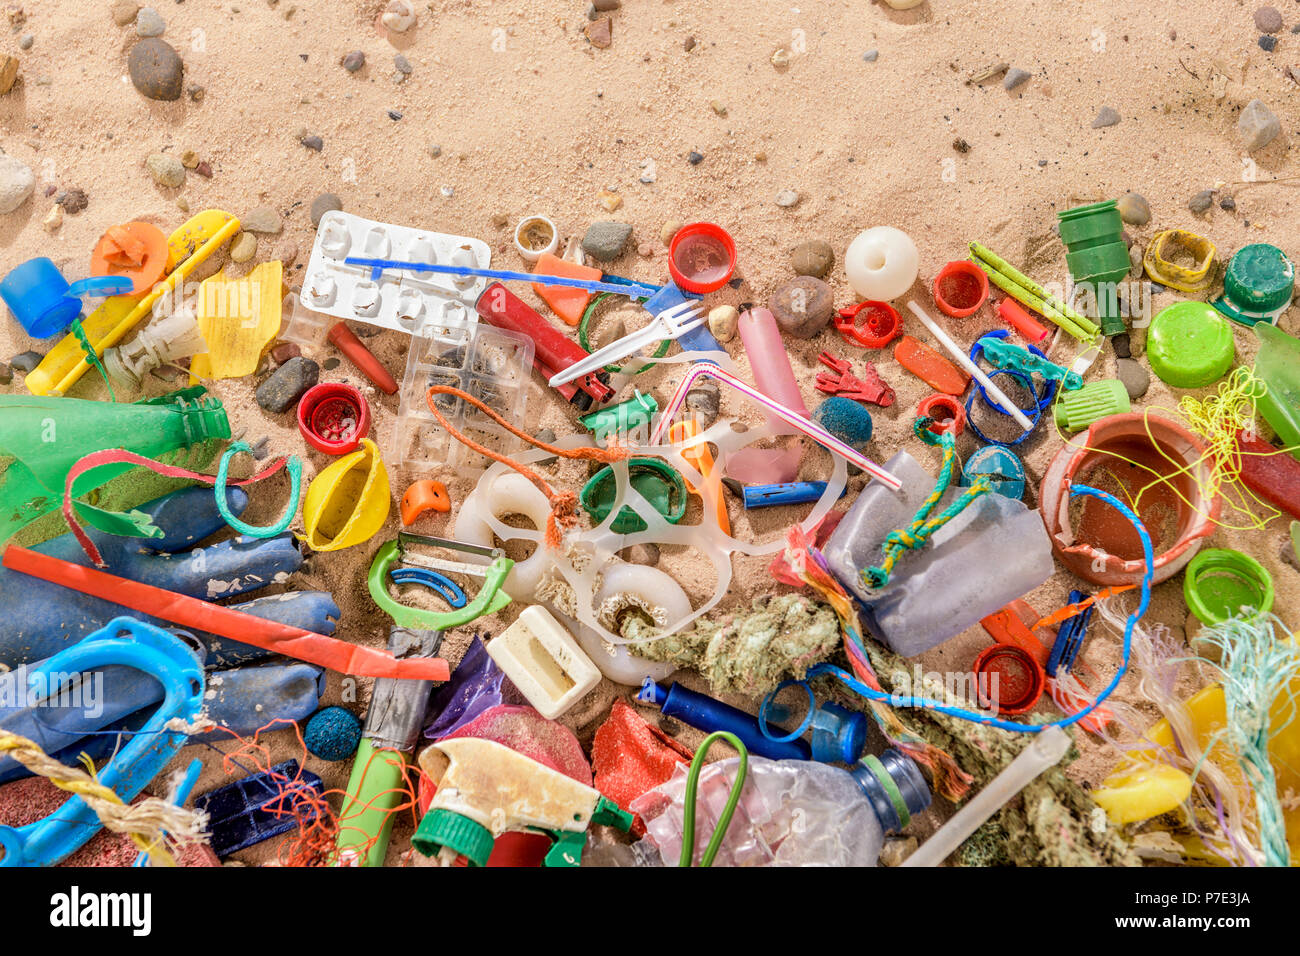 Discarded and polluting plastic garbage on sand collected from beach in North East England, UK - Stock Image